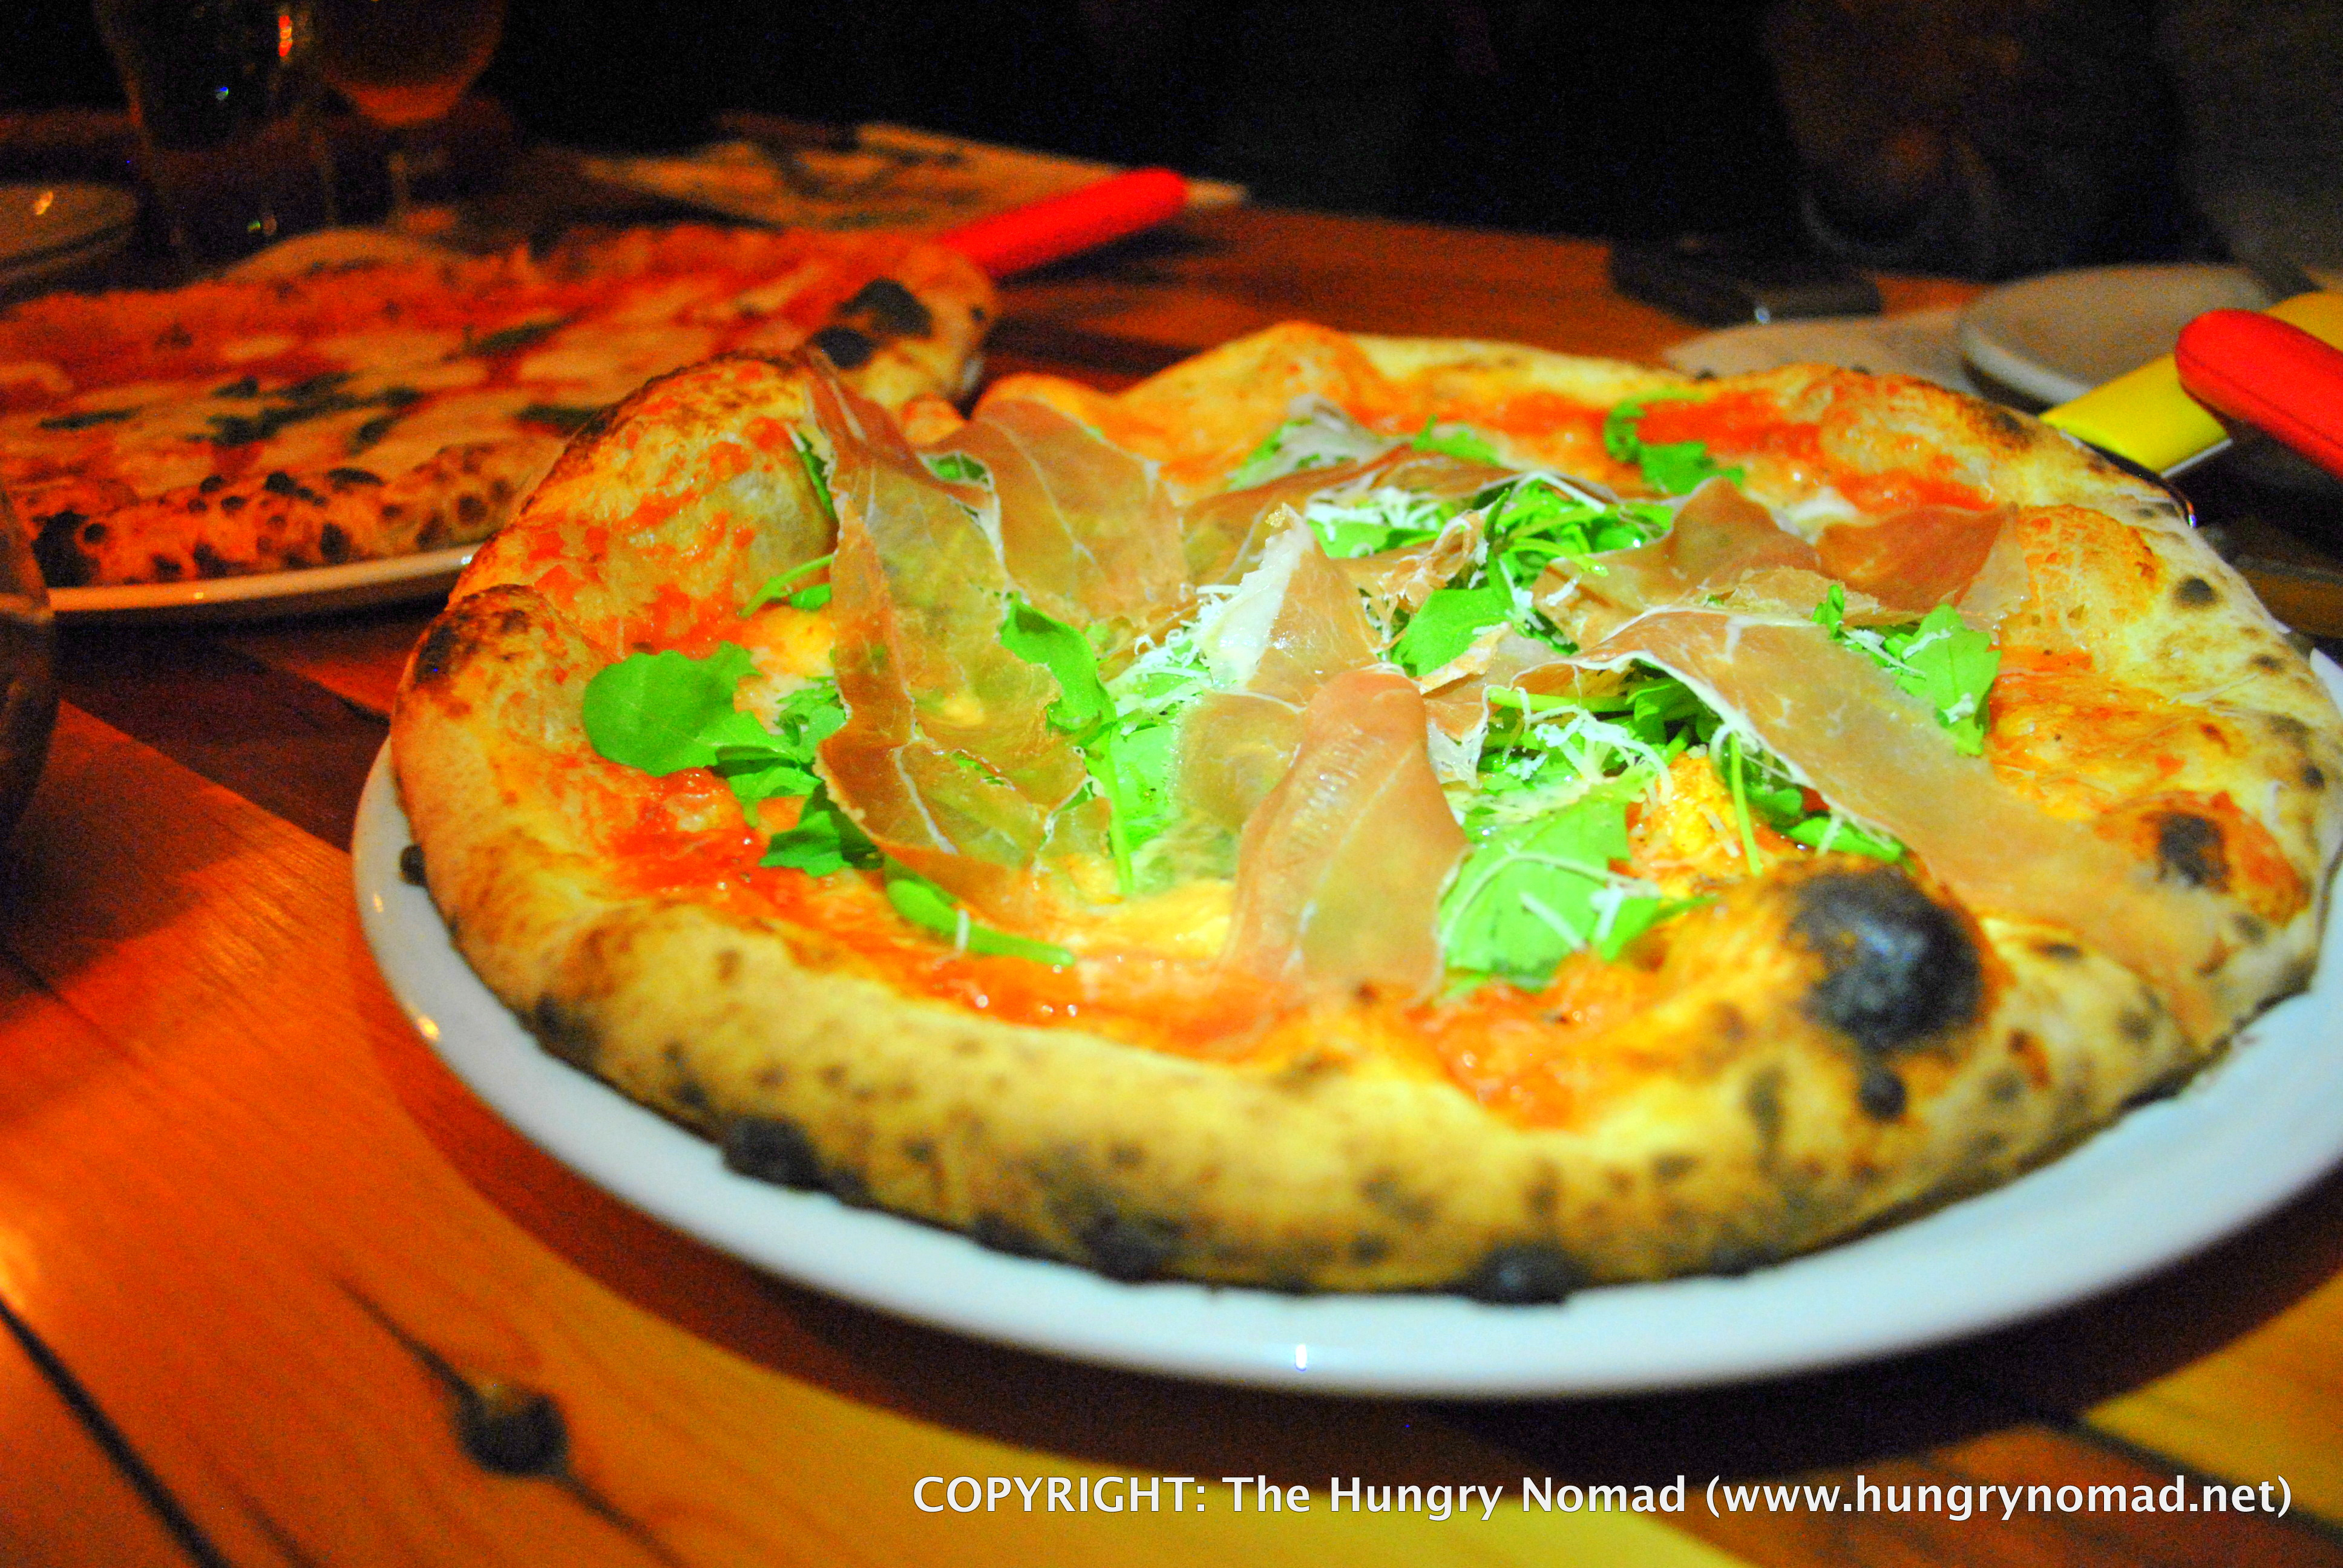 The Hungry Nomad- Nomad Pizza